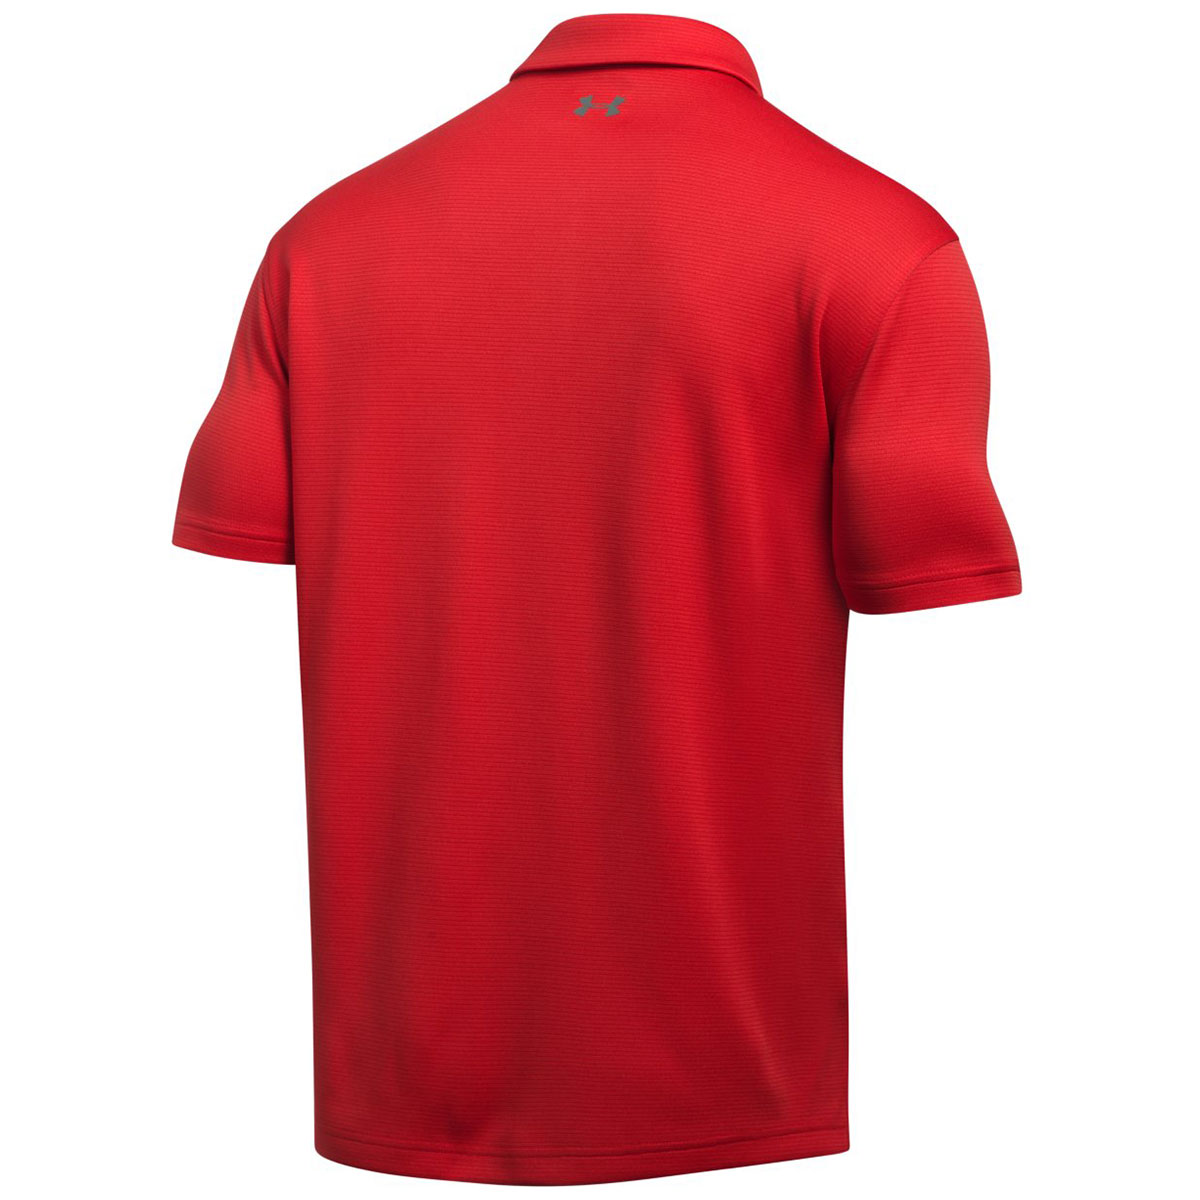 Under-Armour-Mens-2019-Golf-Tech-Wicking-Textured-Soft-Light-Polo-Shirt thumbnail 61